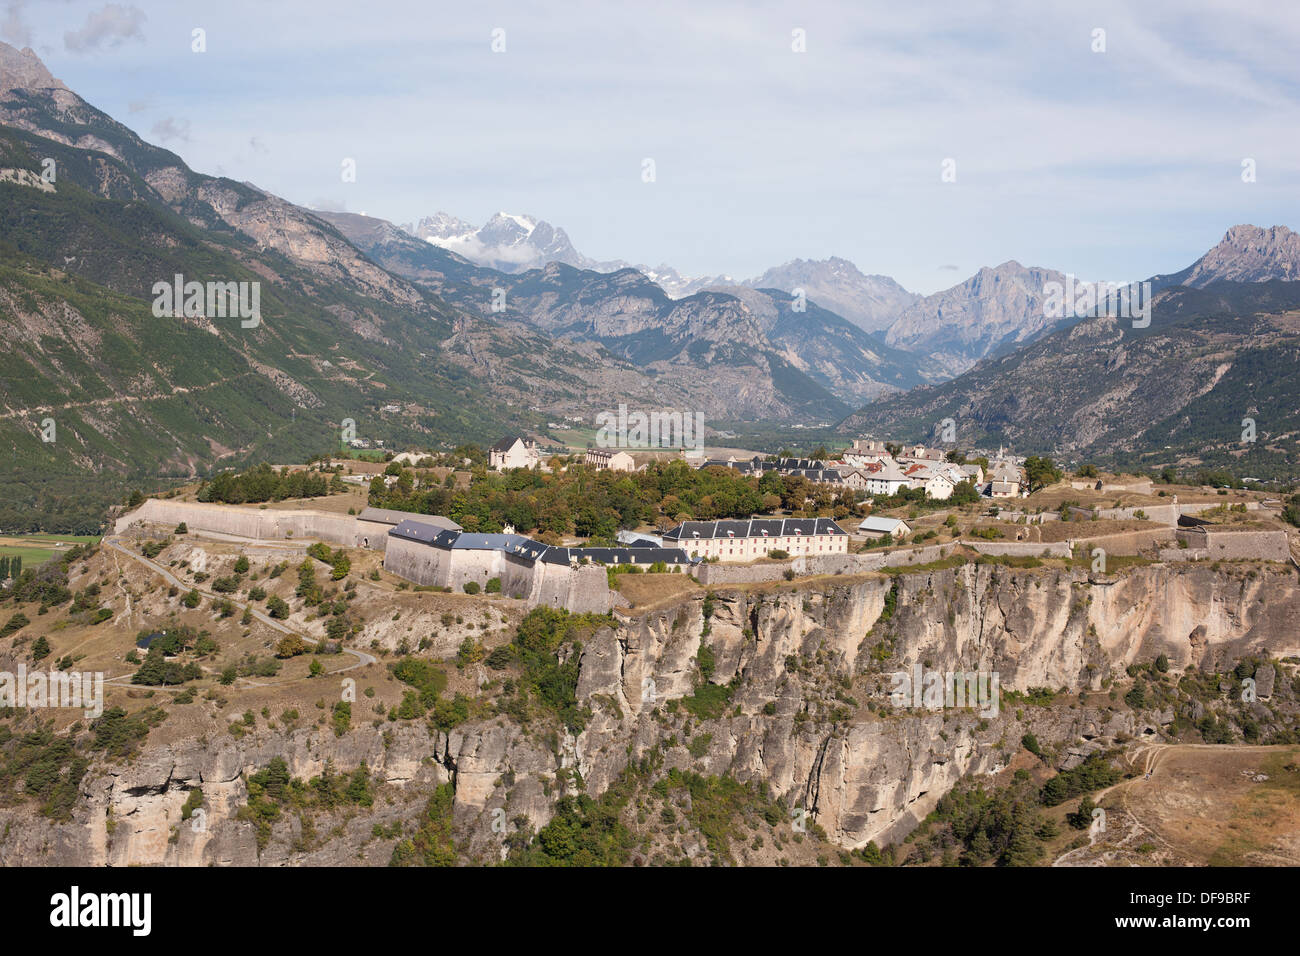 FORTIFICATIONS OF MONT-DAUPHIN (aerial view). The citadel with the Écrins Massif on the horizon. Guillestre, France. - Stock Image